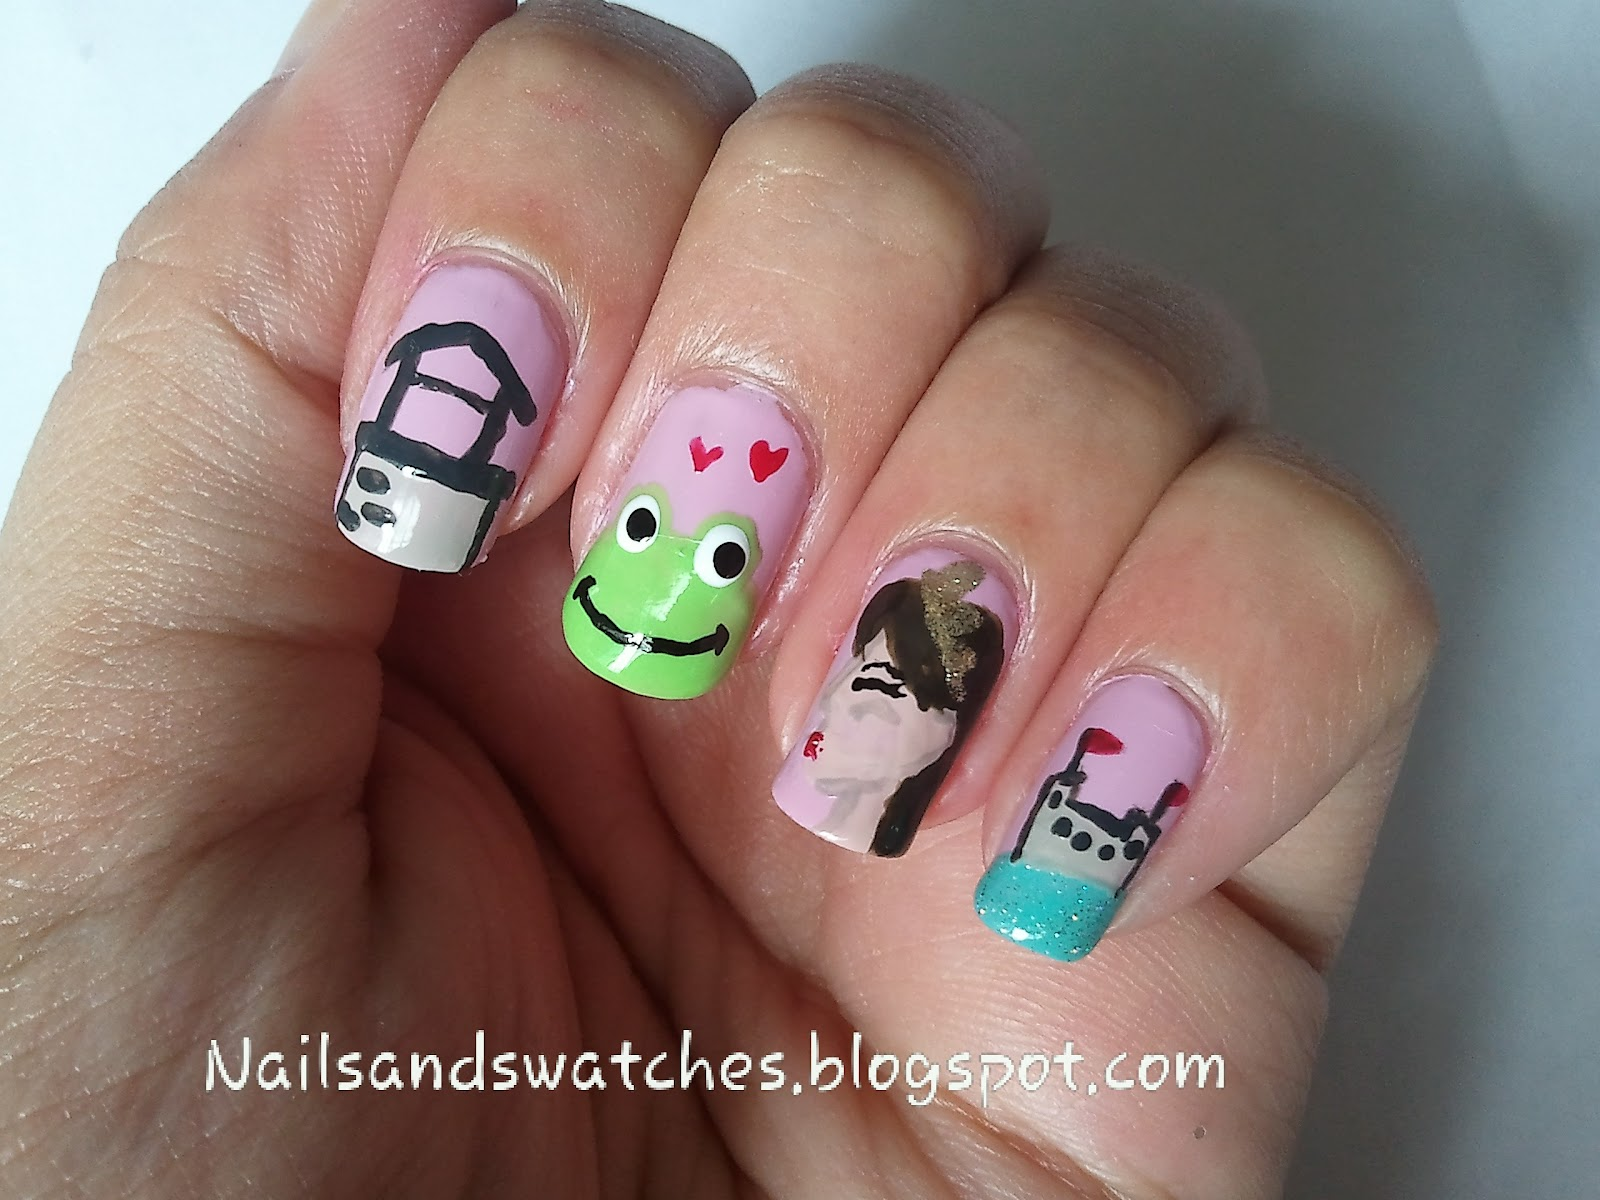 Nails and Swatches: Nail Art Competition: The Princess and the Frog